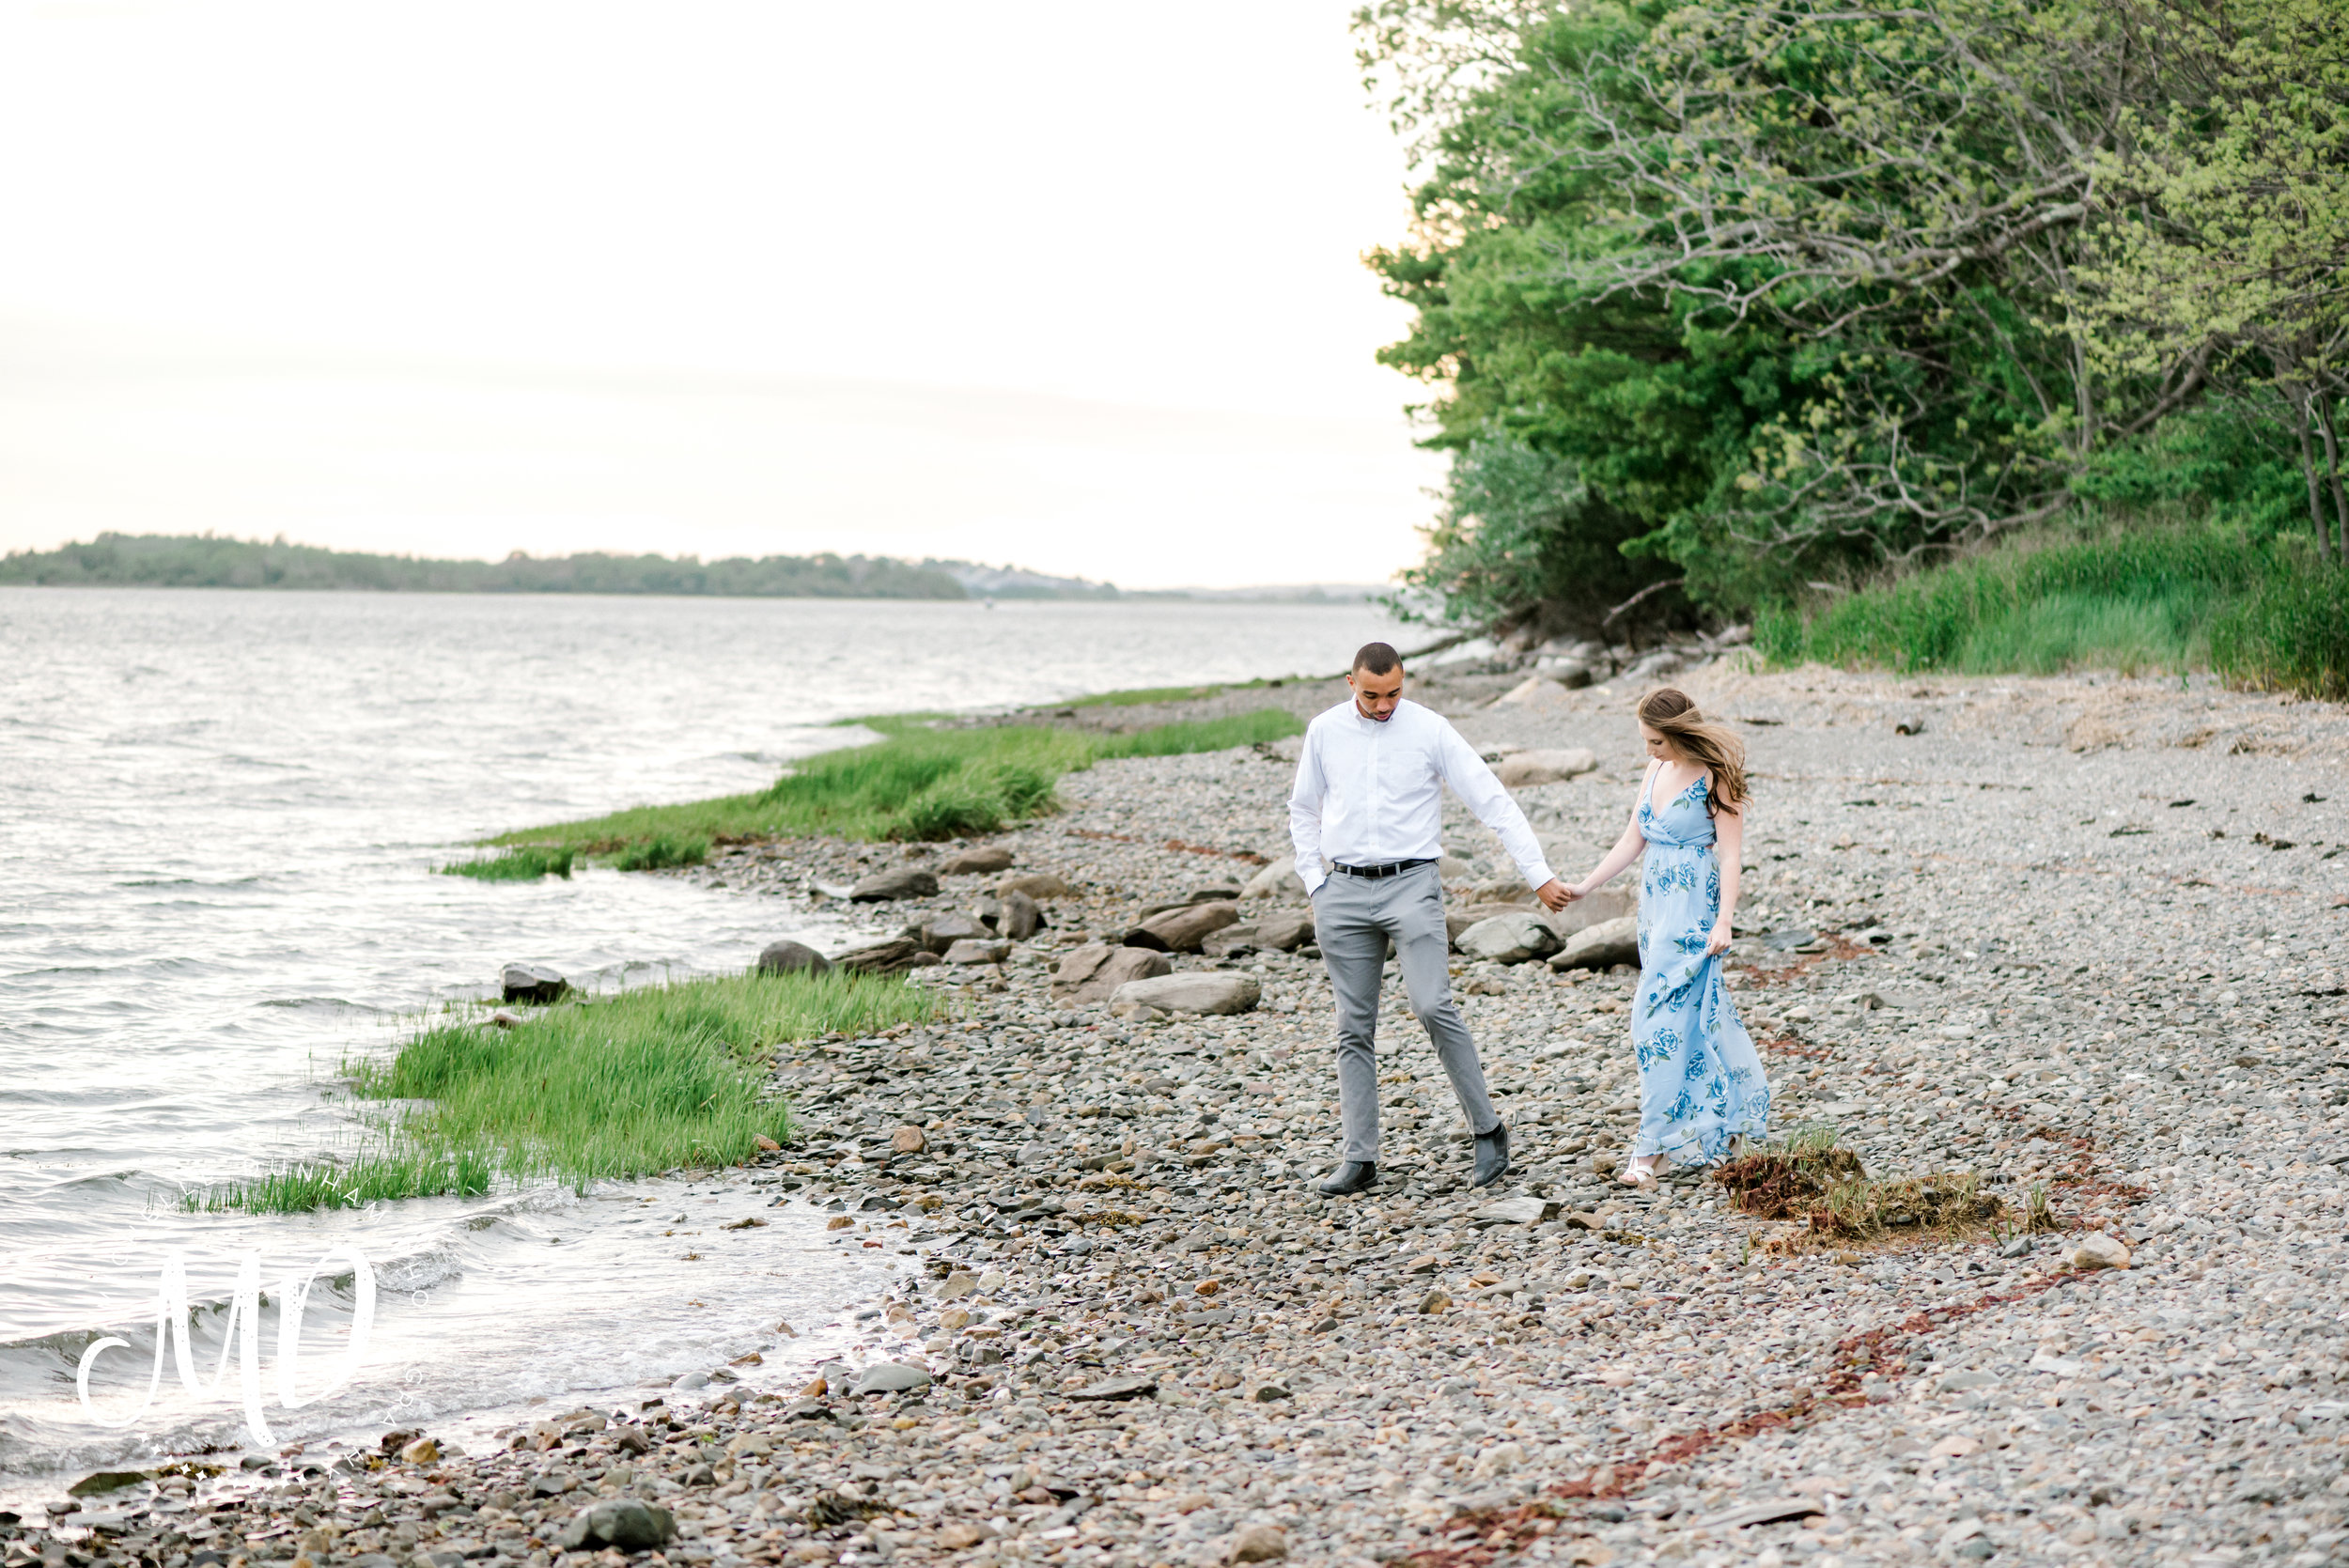 worlds_end_hingham_engagement_boston_cape_cod_wedding_photographer_michelle_dunham_photography-114.jpg